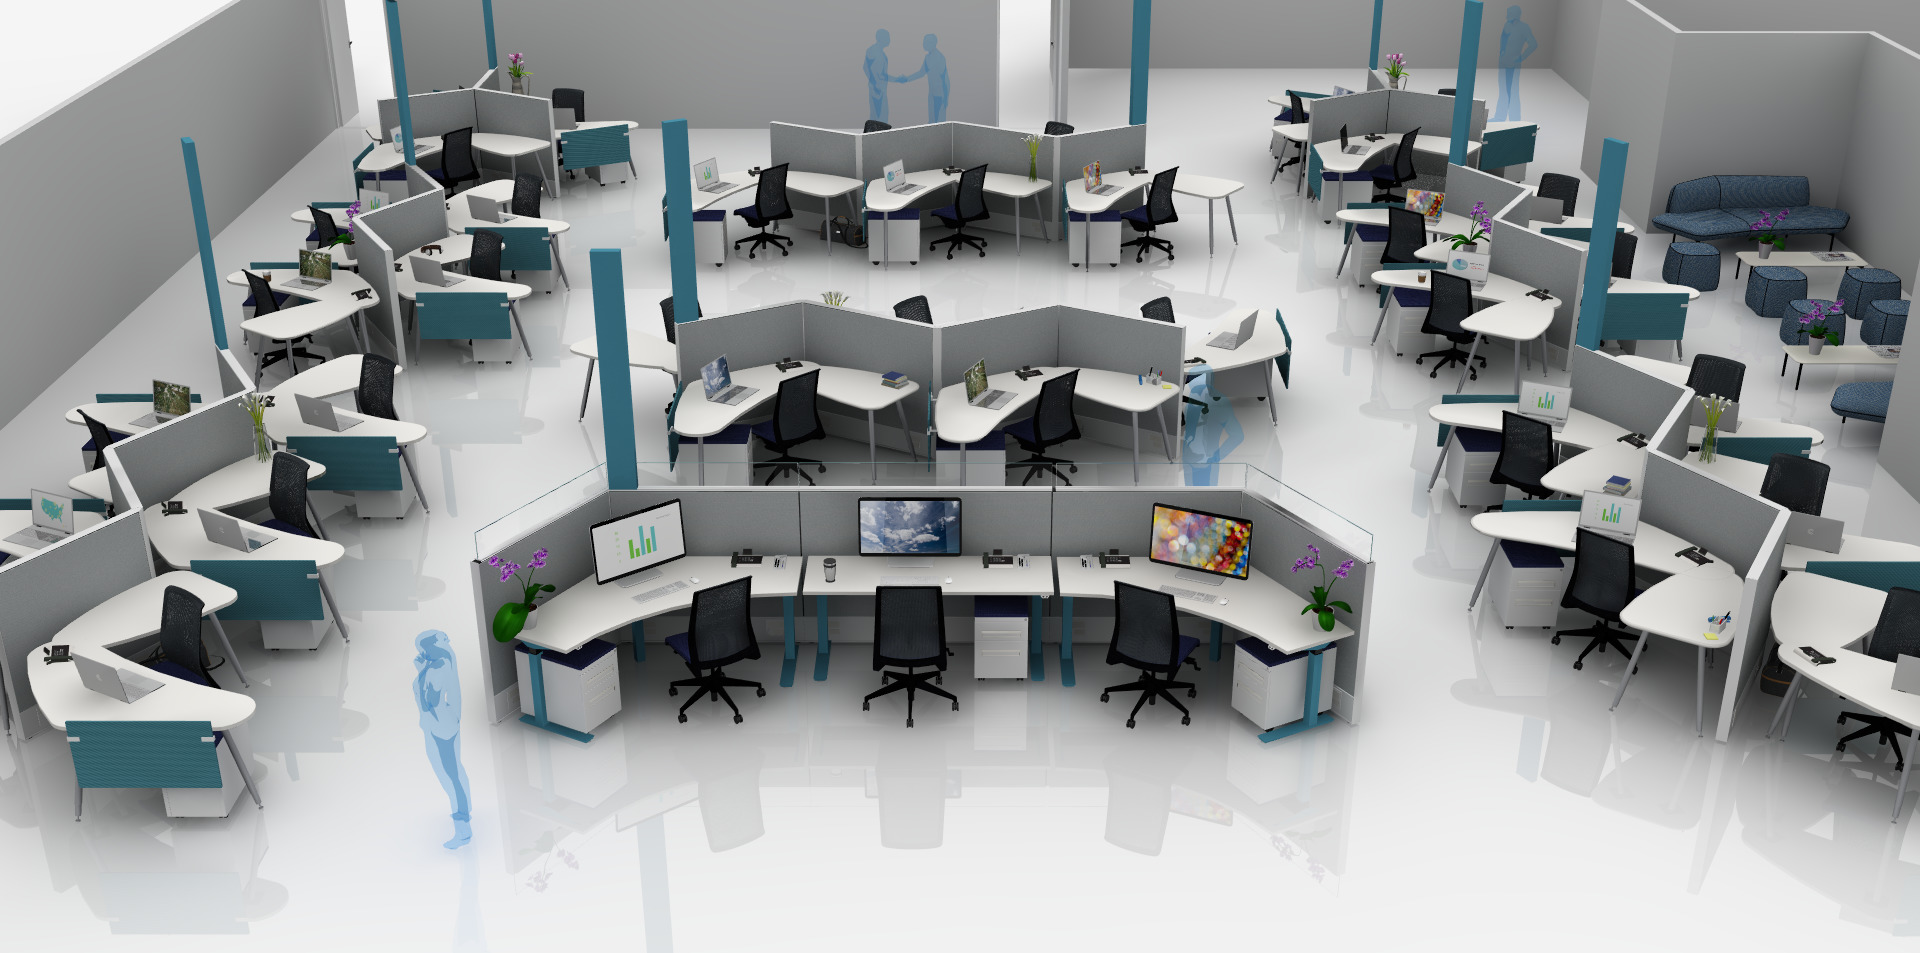 flexible office furniture. our specialists work with you to find flexible solutions configured optimize space and maximize natural office furniture d